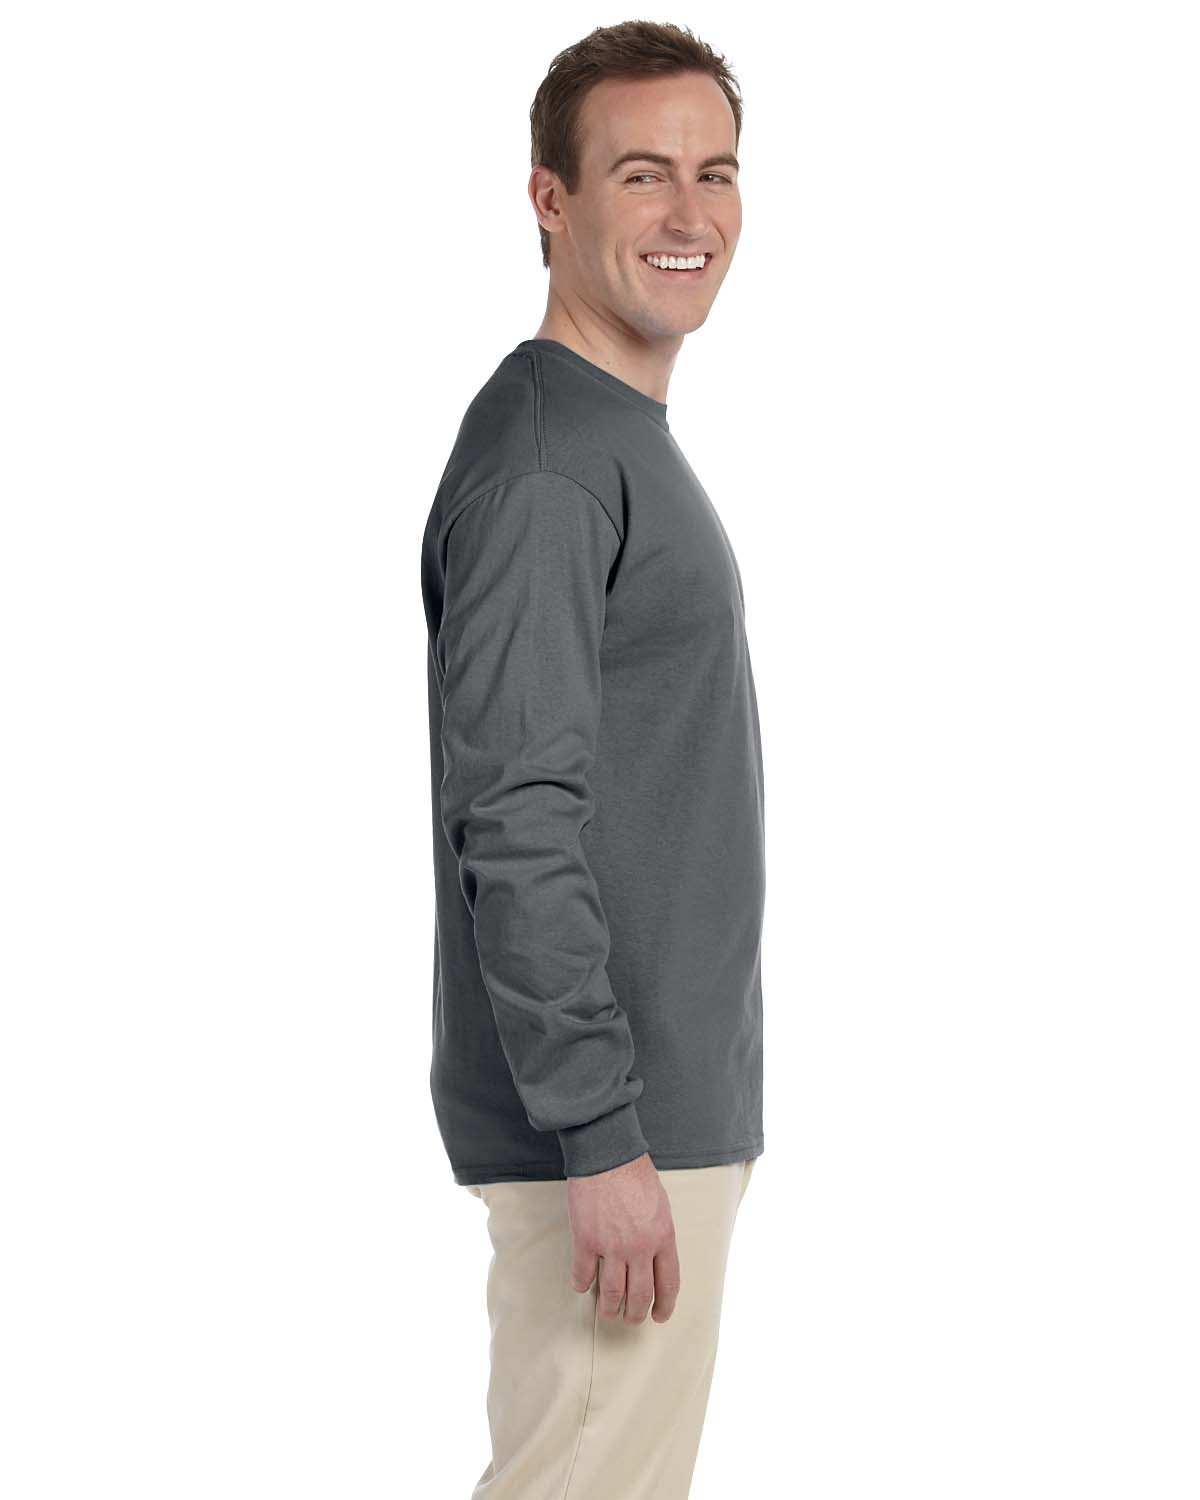 4930 Fruit of the Loom CHARCOAL GREY